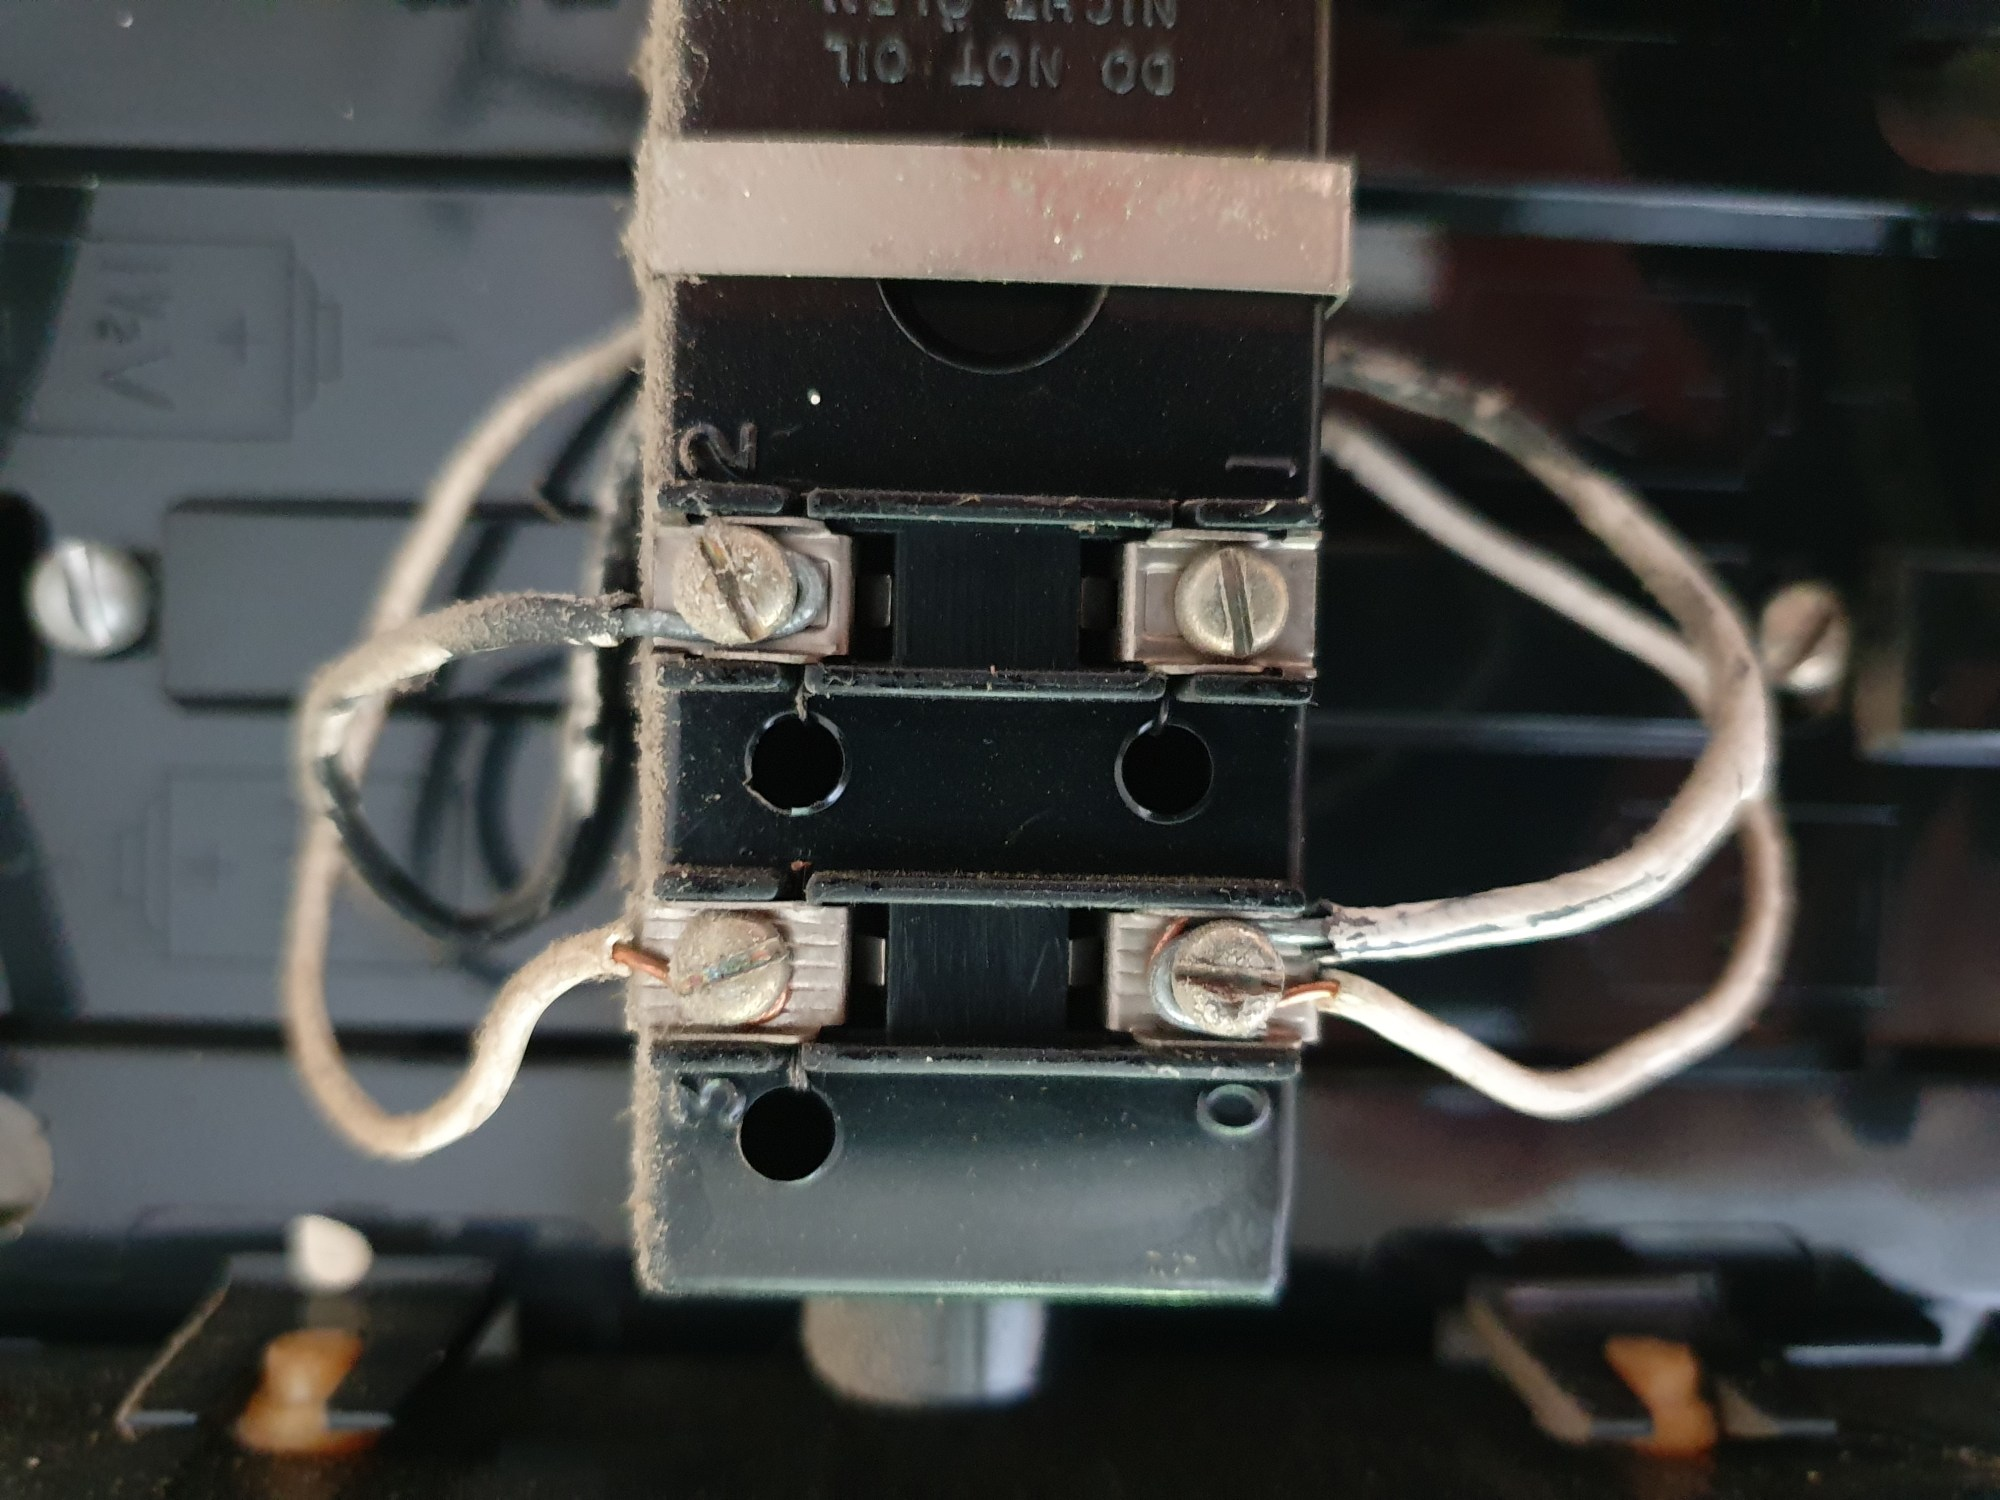 hight resolution of can someone help me understand how to wire up the nest hello with this chime in the uk it is a friedland 954 thank you